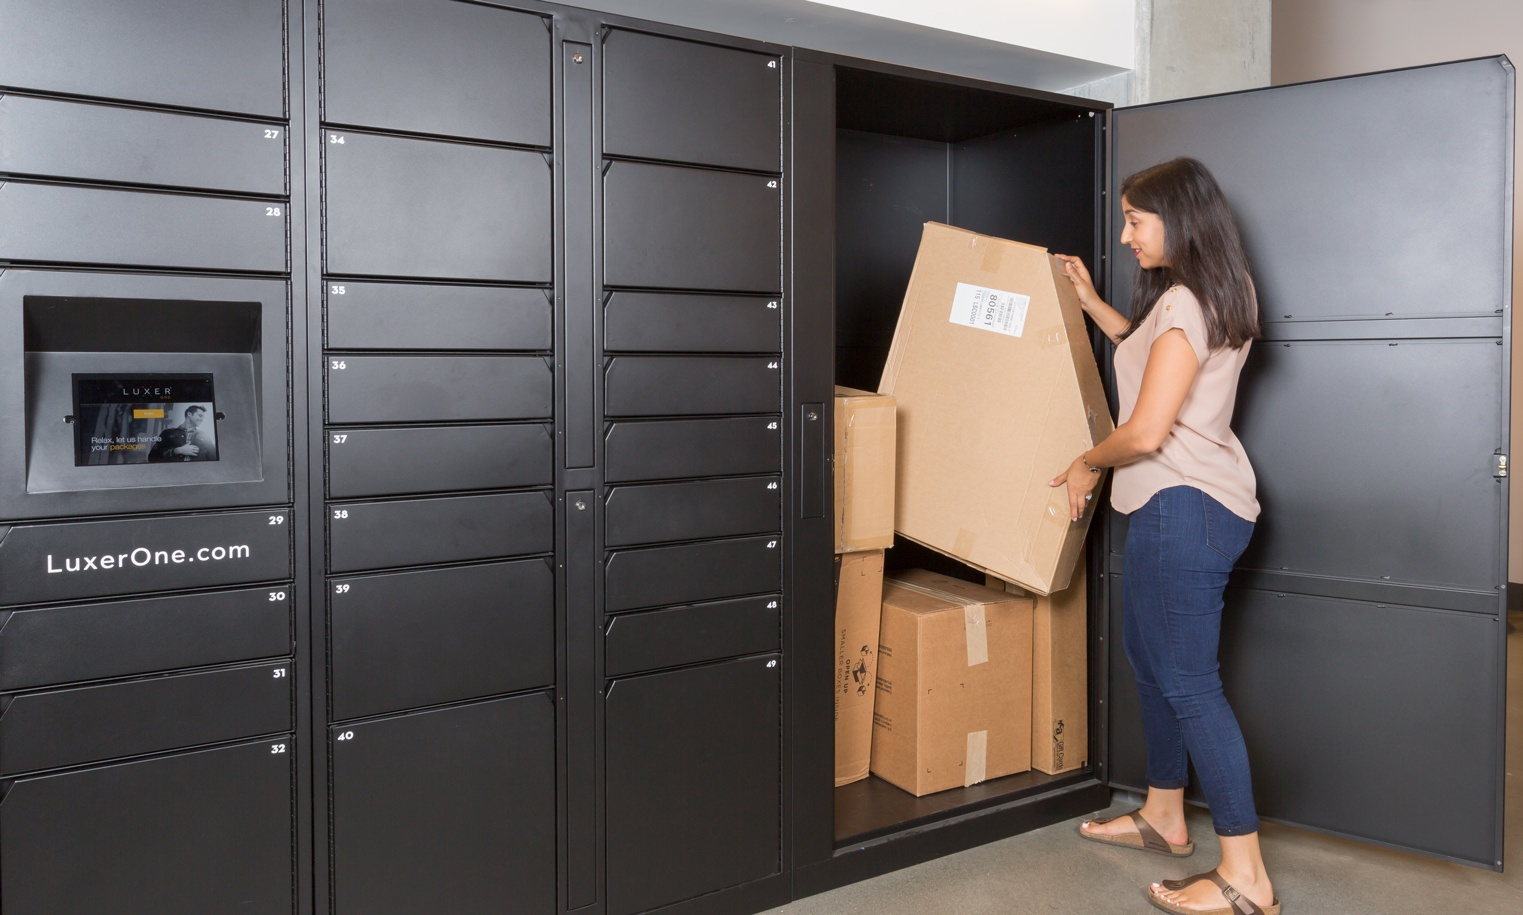 A woman retrieves an oversized package from the Luxer One Oversized locker.